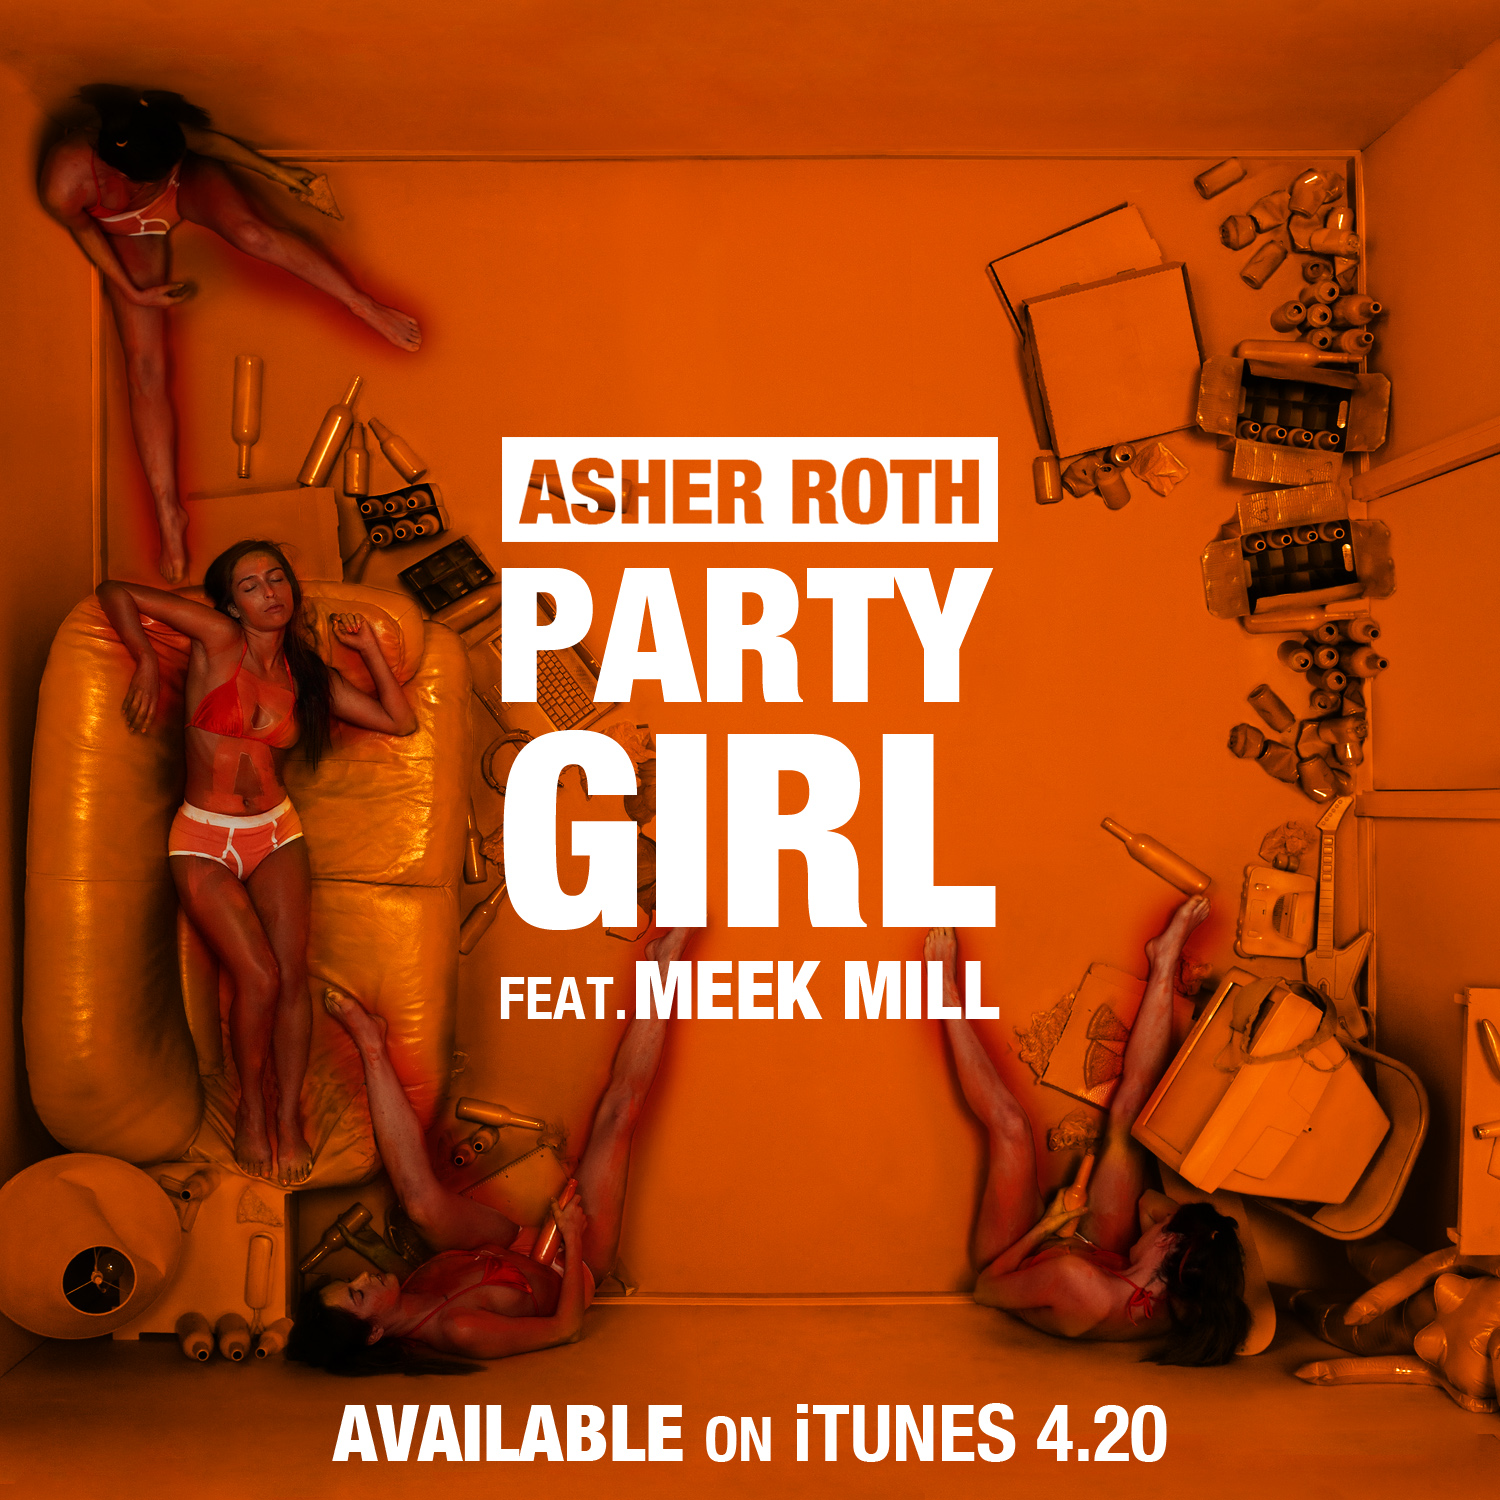 Listen to a new hiphop song Party Girl (Feat. Meek Mill) - Asher Roth